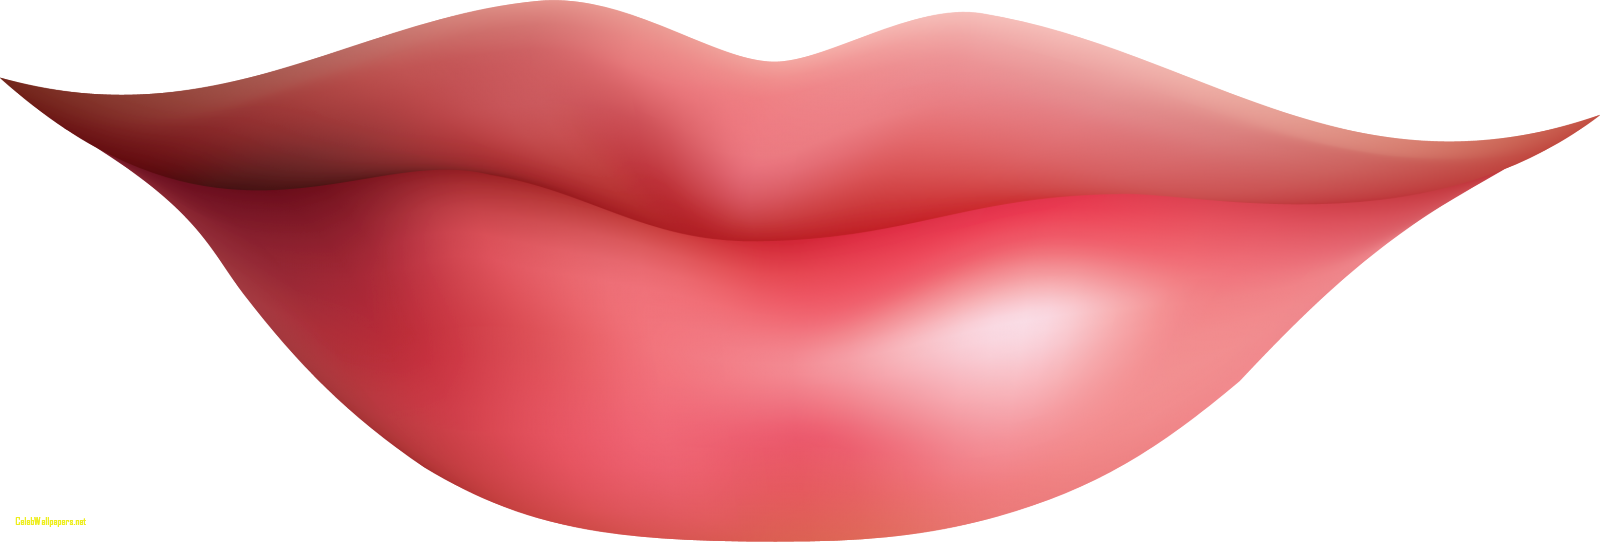 clip art free library Lips free on dumielauxepices. Lip clipart man lip.